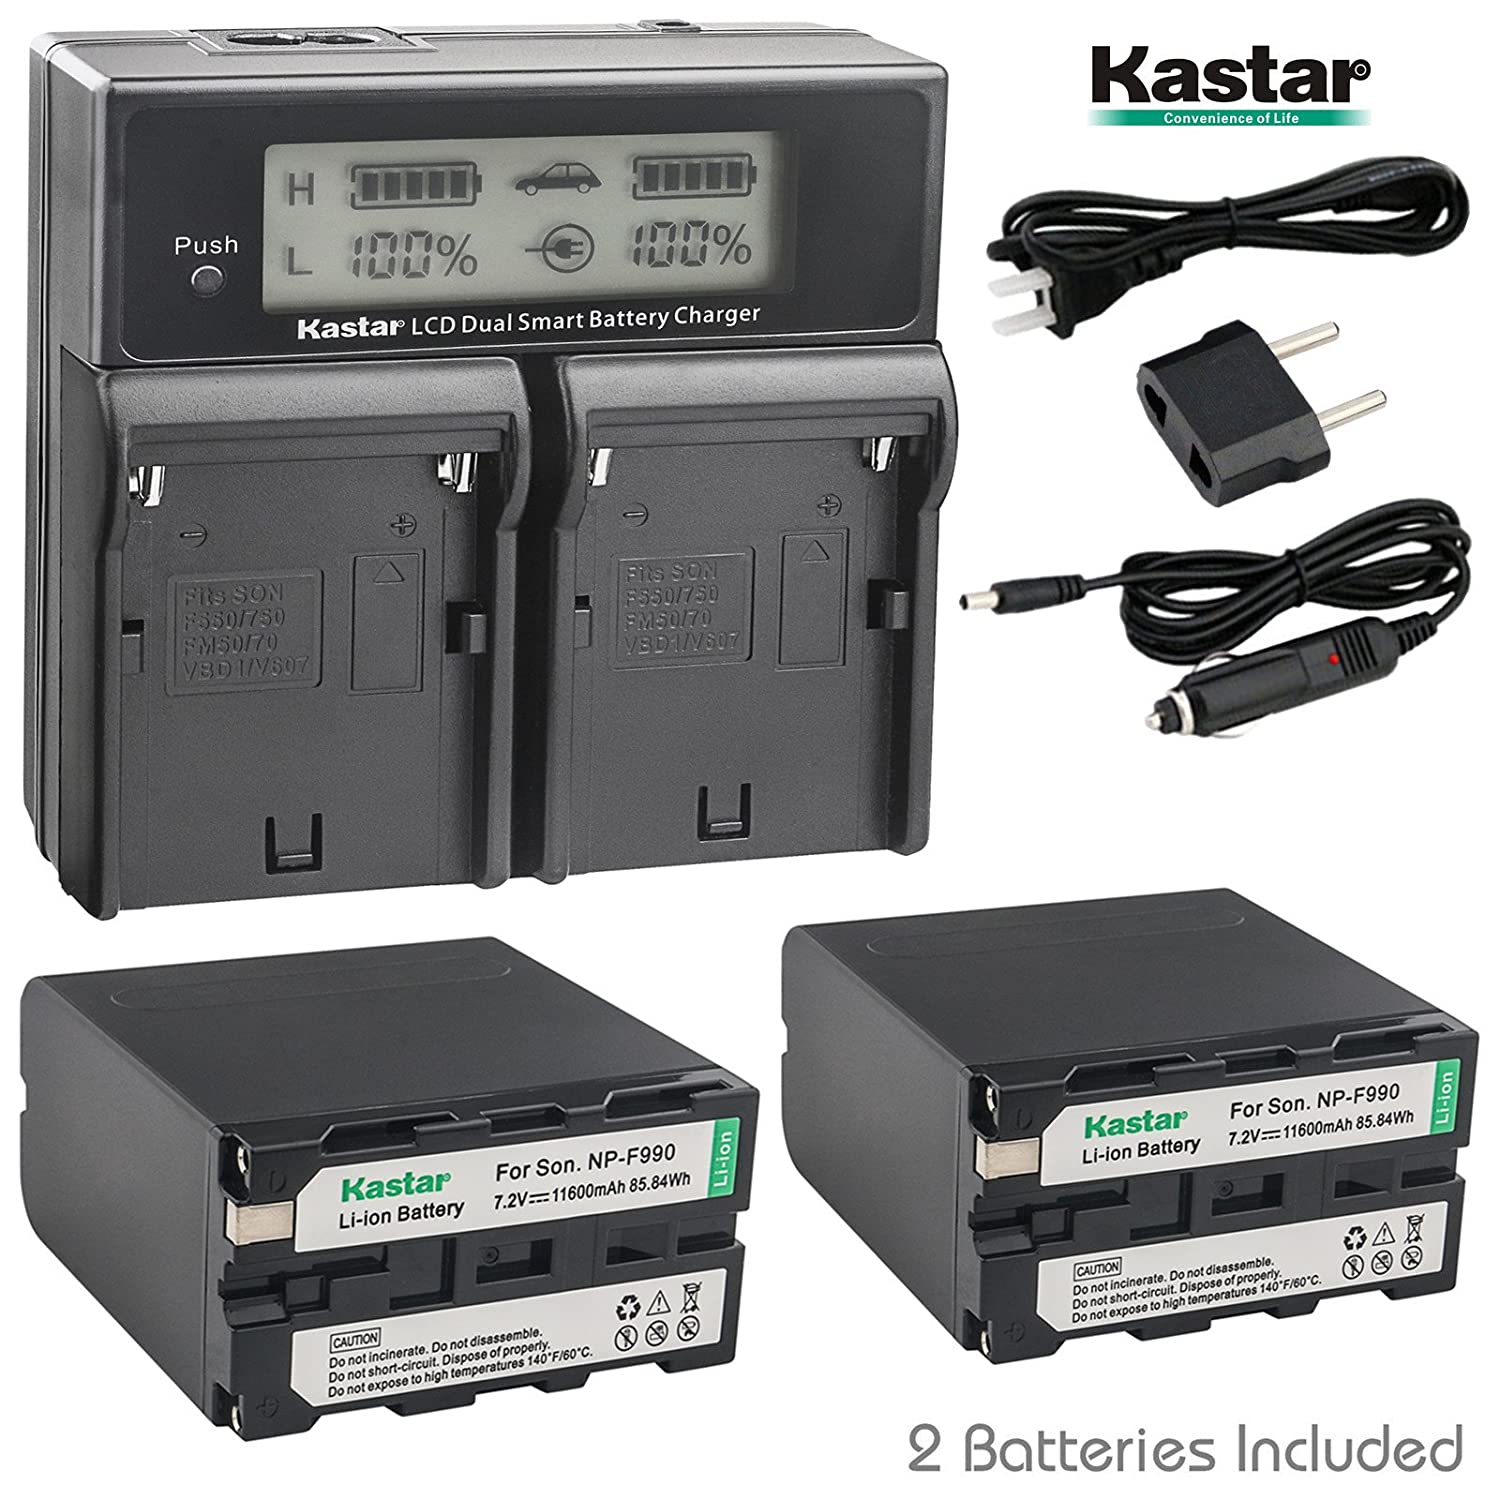 Kastar充電器、バッテリーfor np-f990 – 2 np-f990 F990 B075G5DSZZ  1 LCD dual fast charger + 2 batteries